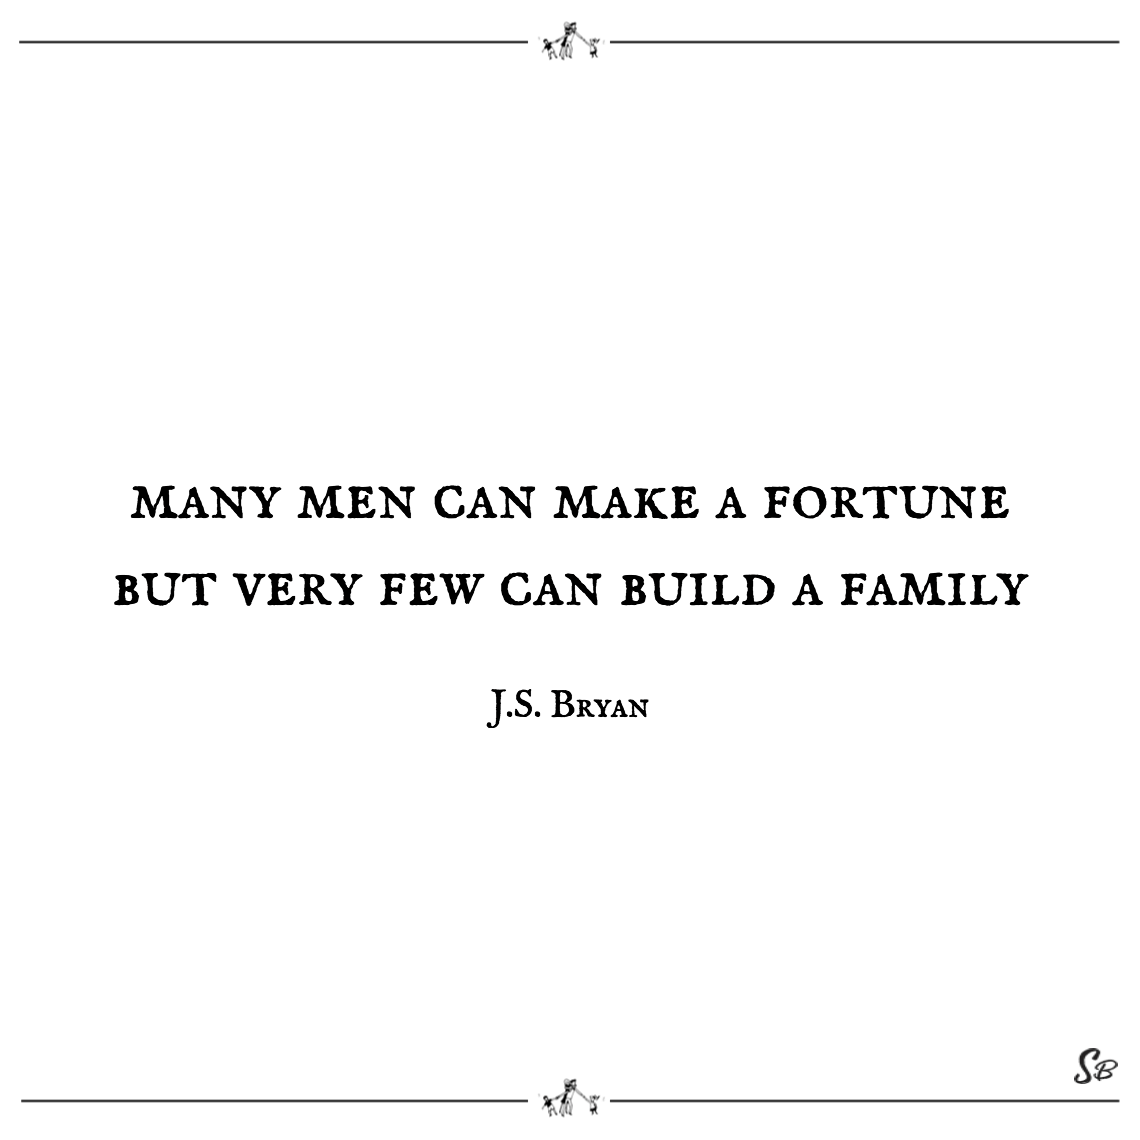 Many men can make a fortune but very few can build a family j.s. bryan